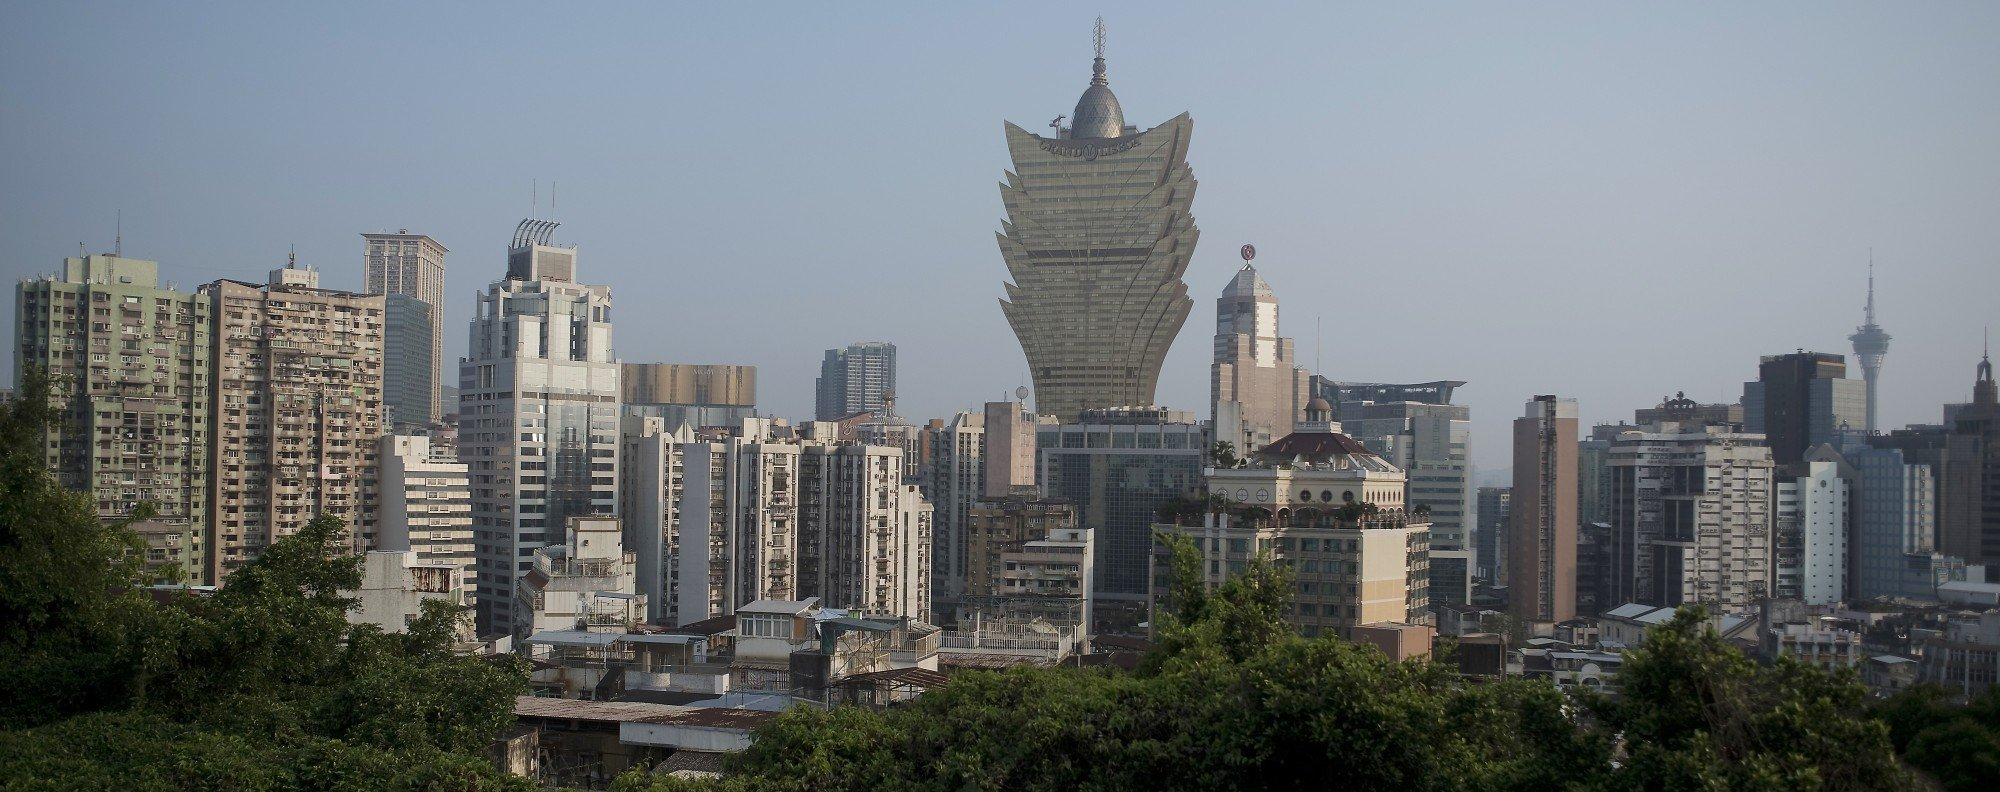 The Macau skyline. Photo: Xiaomei Chen